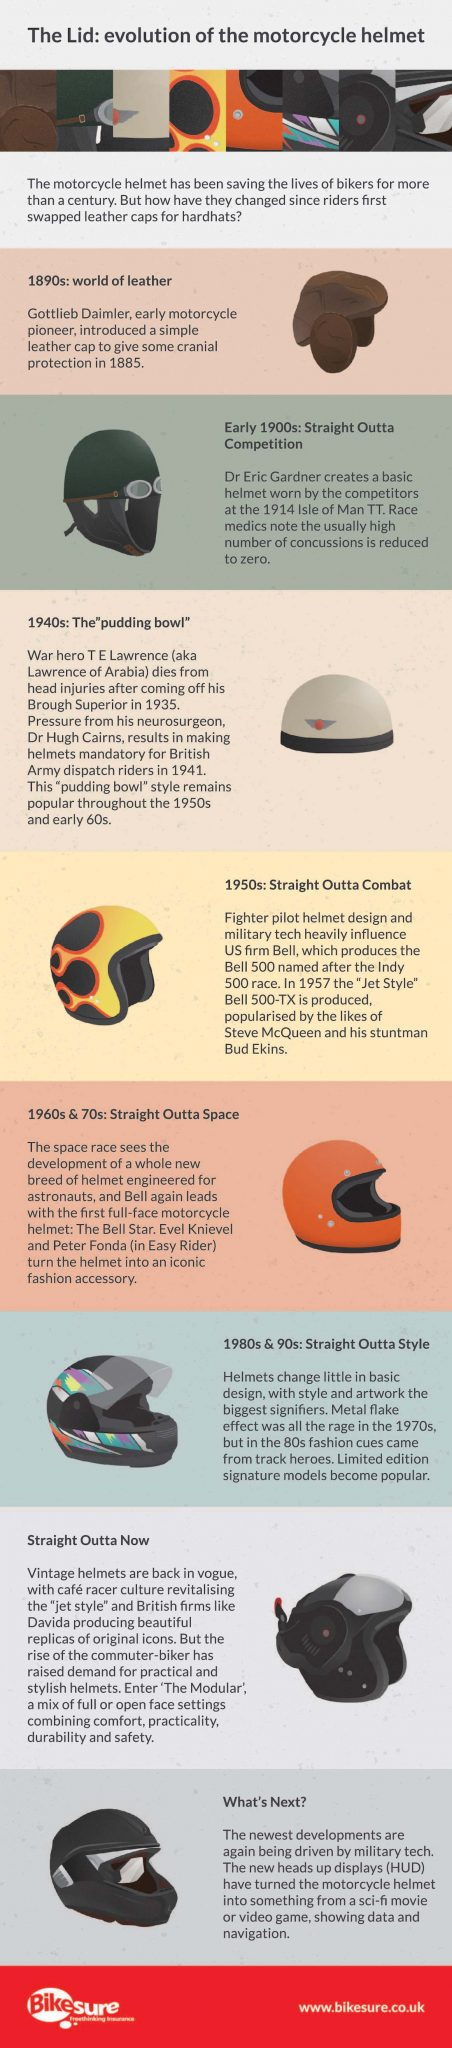 Evolution of motorcycle helmet